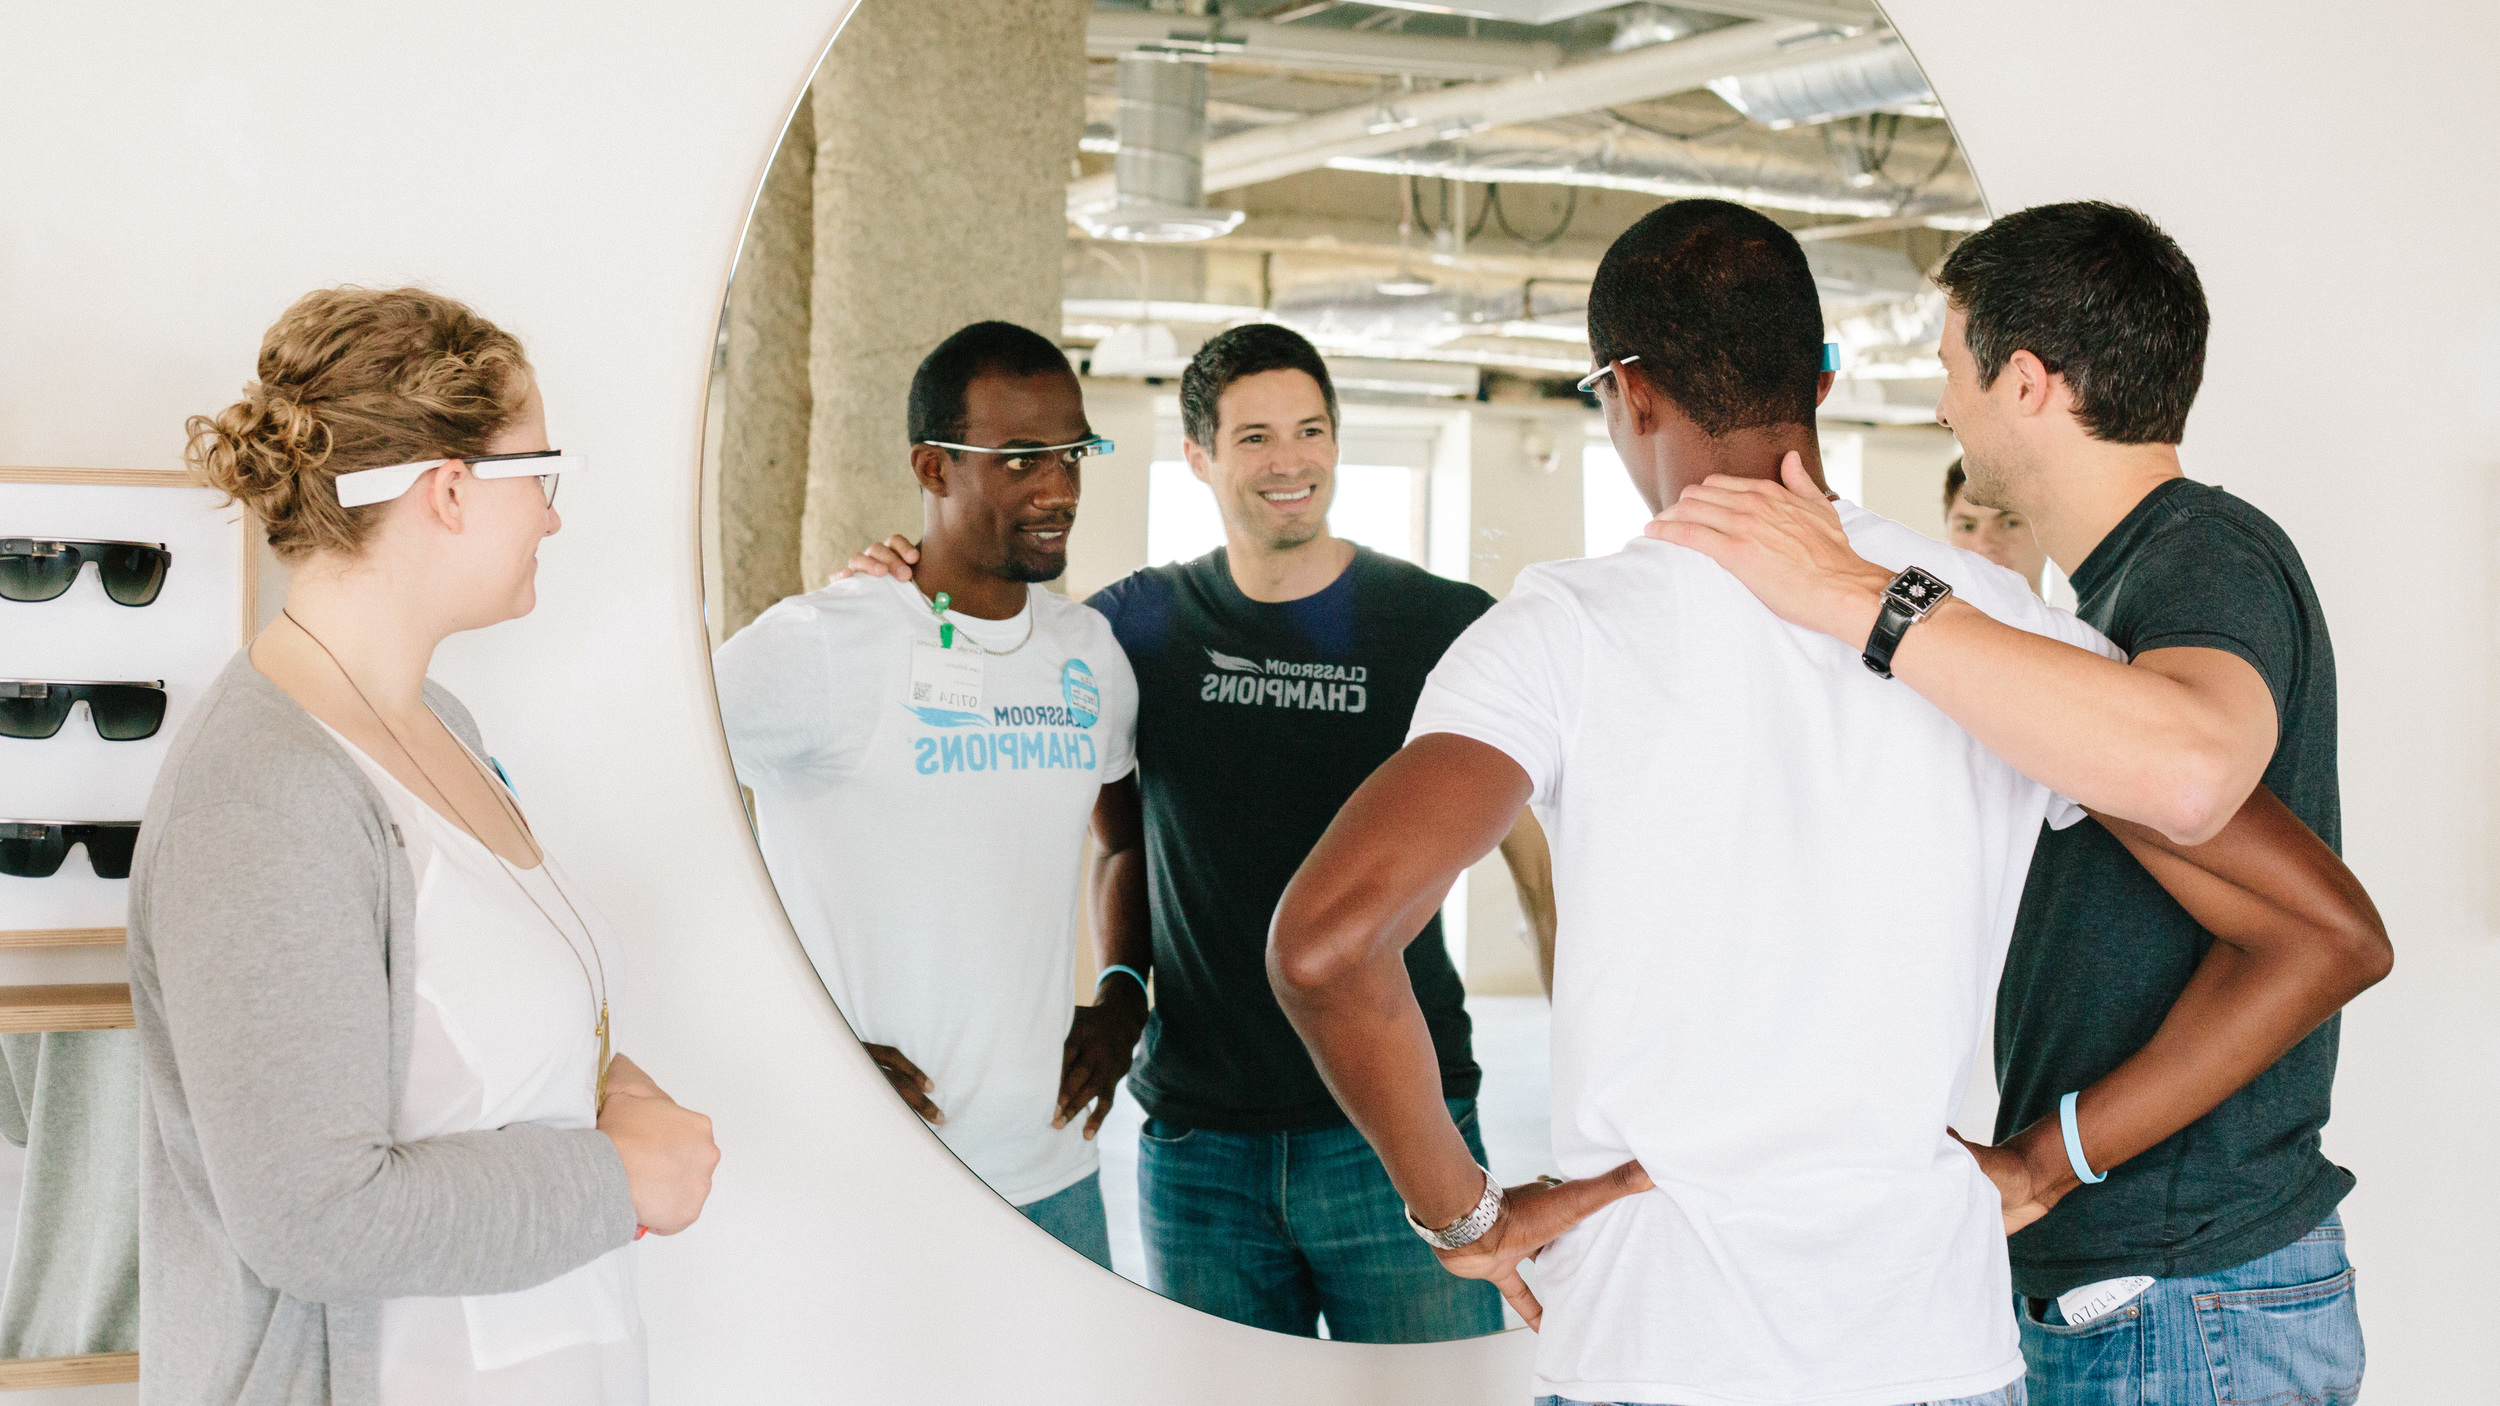 In July 2014, Google.org and Glass co-hosted Glass training sessions for the Giving Through Glass nonprofit recipients.